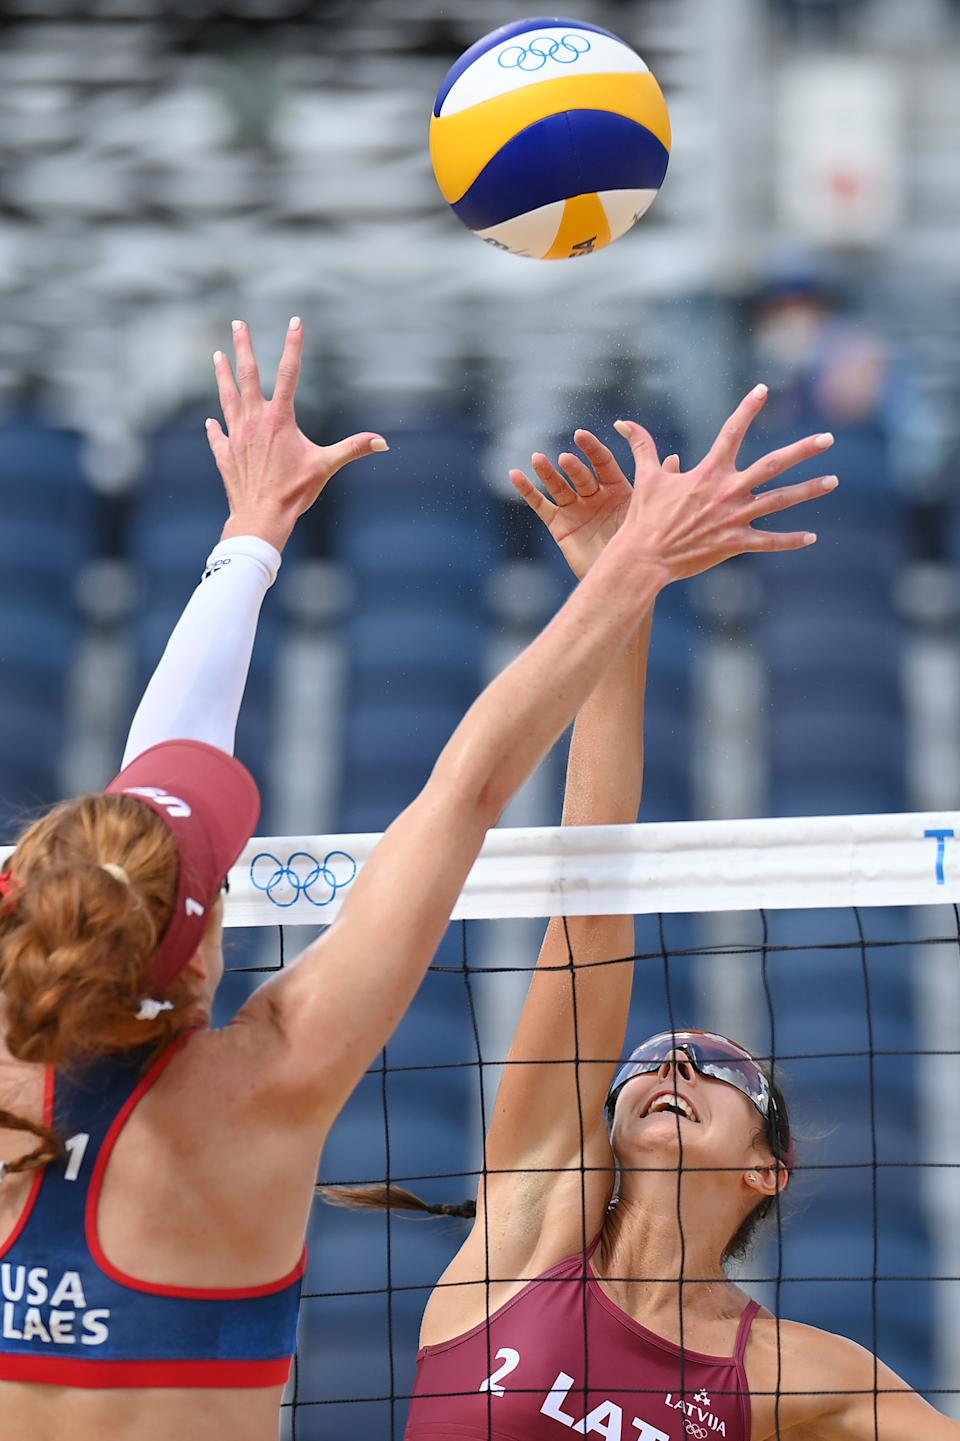 <p>Anastasija Kravcenoka #2 of Team Latvia attempts to hit over Kelly Claes #1 of Team United States during the Women's Preliminary - Pool D beach volleyball on day three of the Tokyo 2020 Olympic Games at Shiokaze Park on July 26, 2021 in Tokyo, Japan. (Photo by Matthias Hangst/Getty Images)</p>